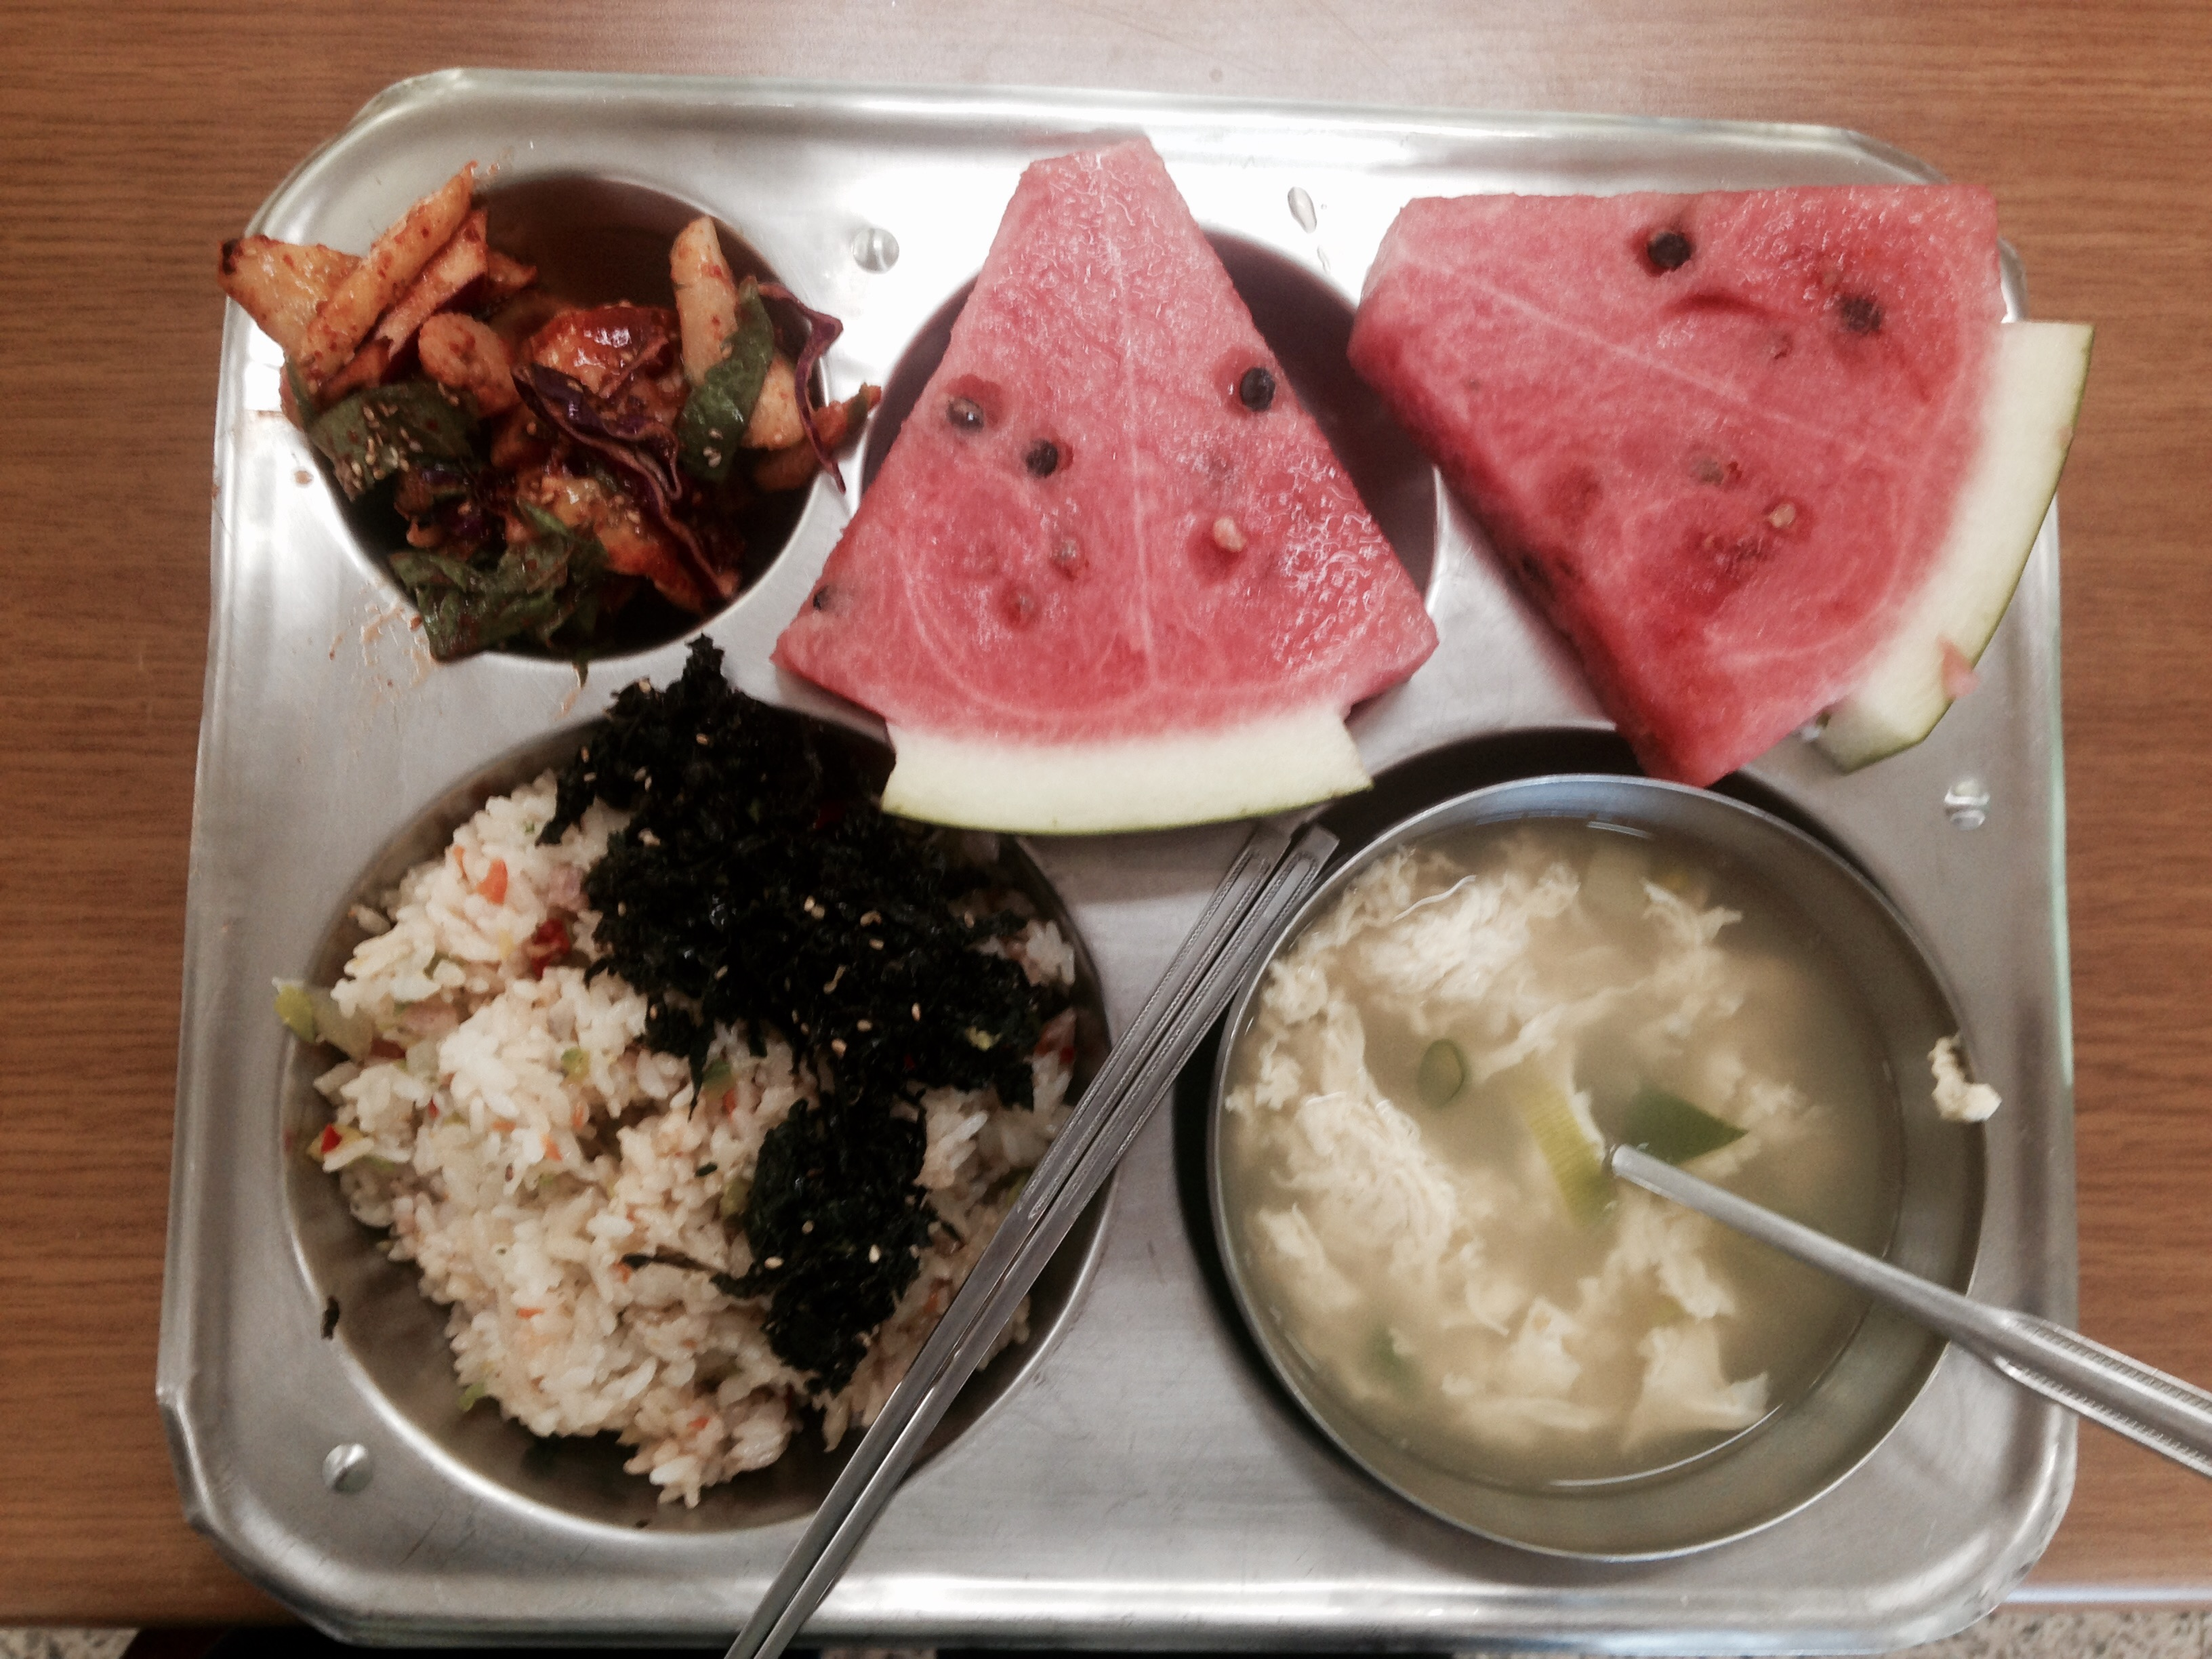 school lunches in south korea the huffington post 2016 03 13 1457845151 2260830 fullsizerender20 jpg